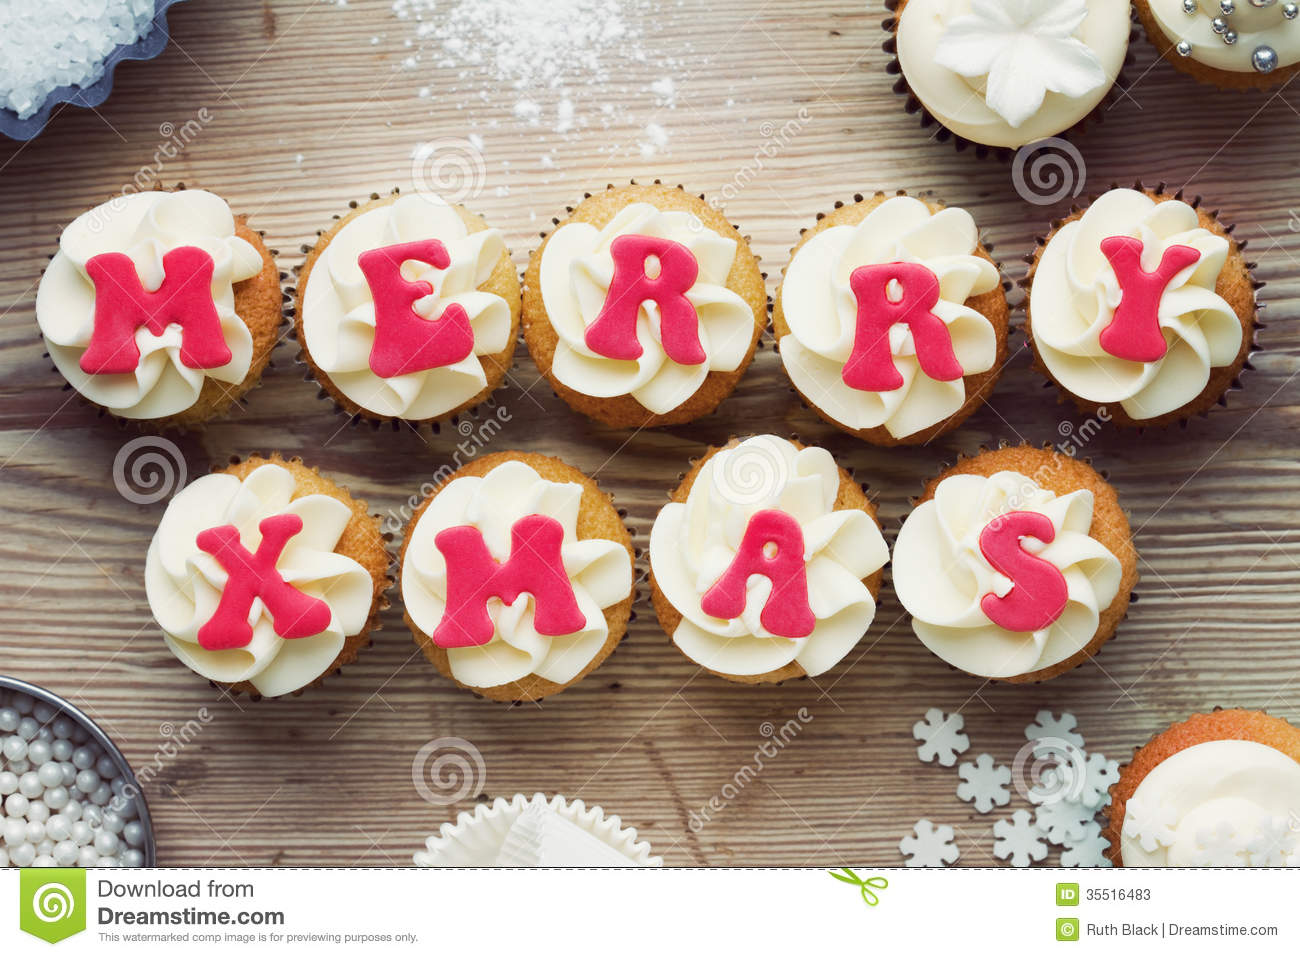 Download Christmas cupcakes stock image. Image of dessert, cakes - 35516483